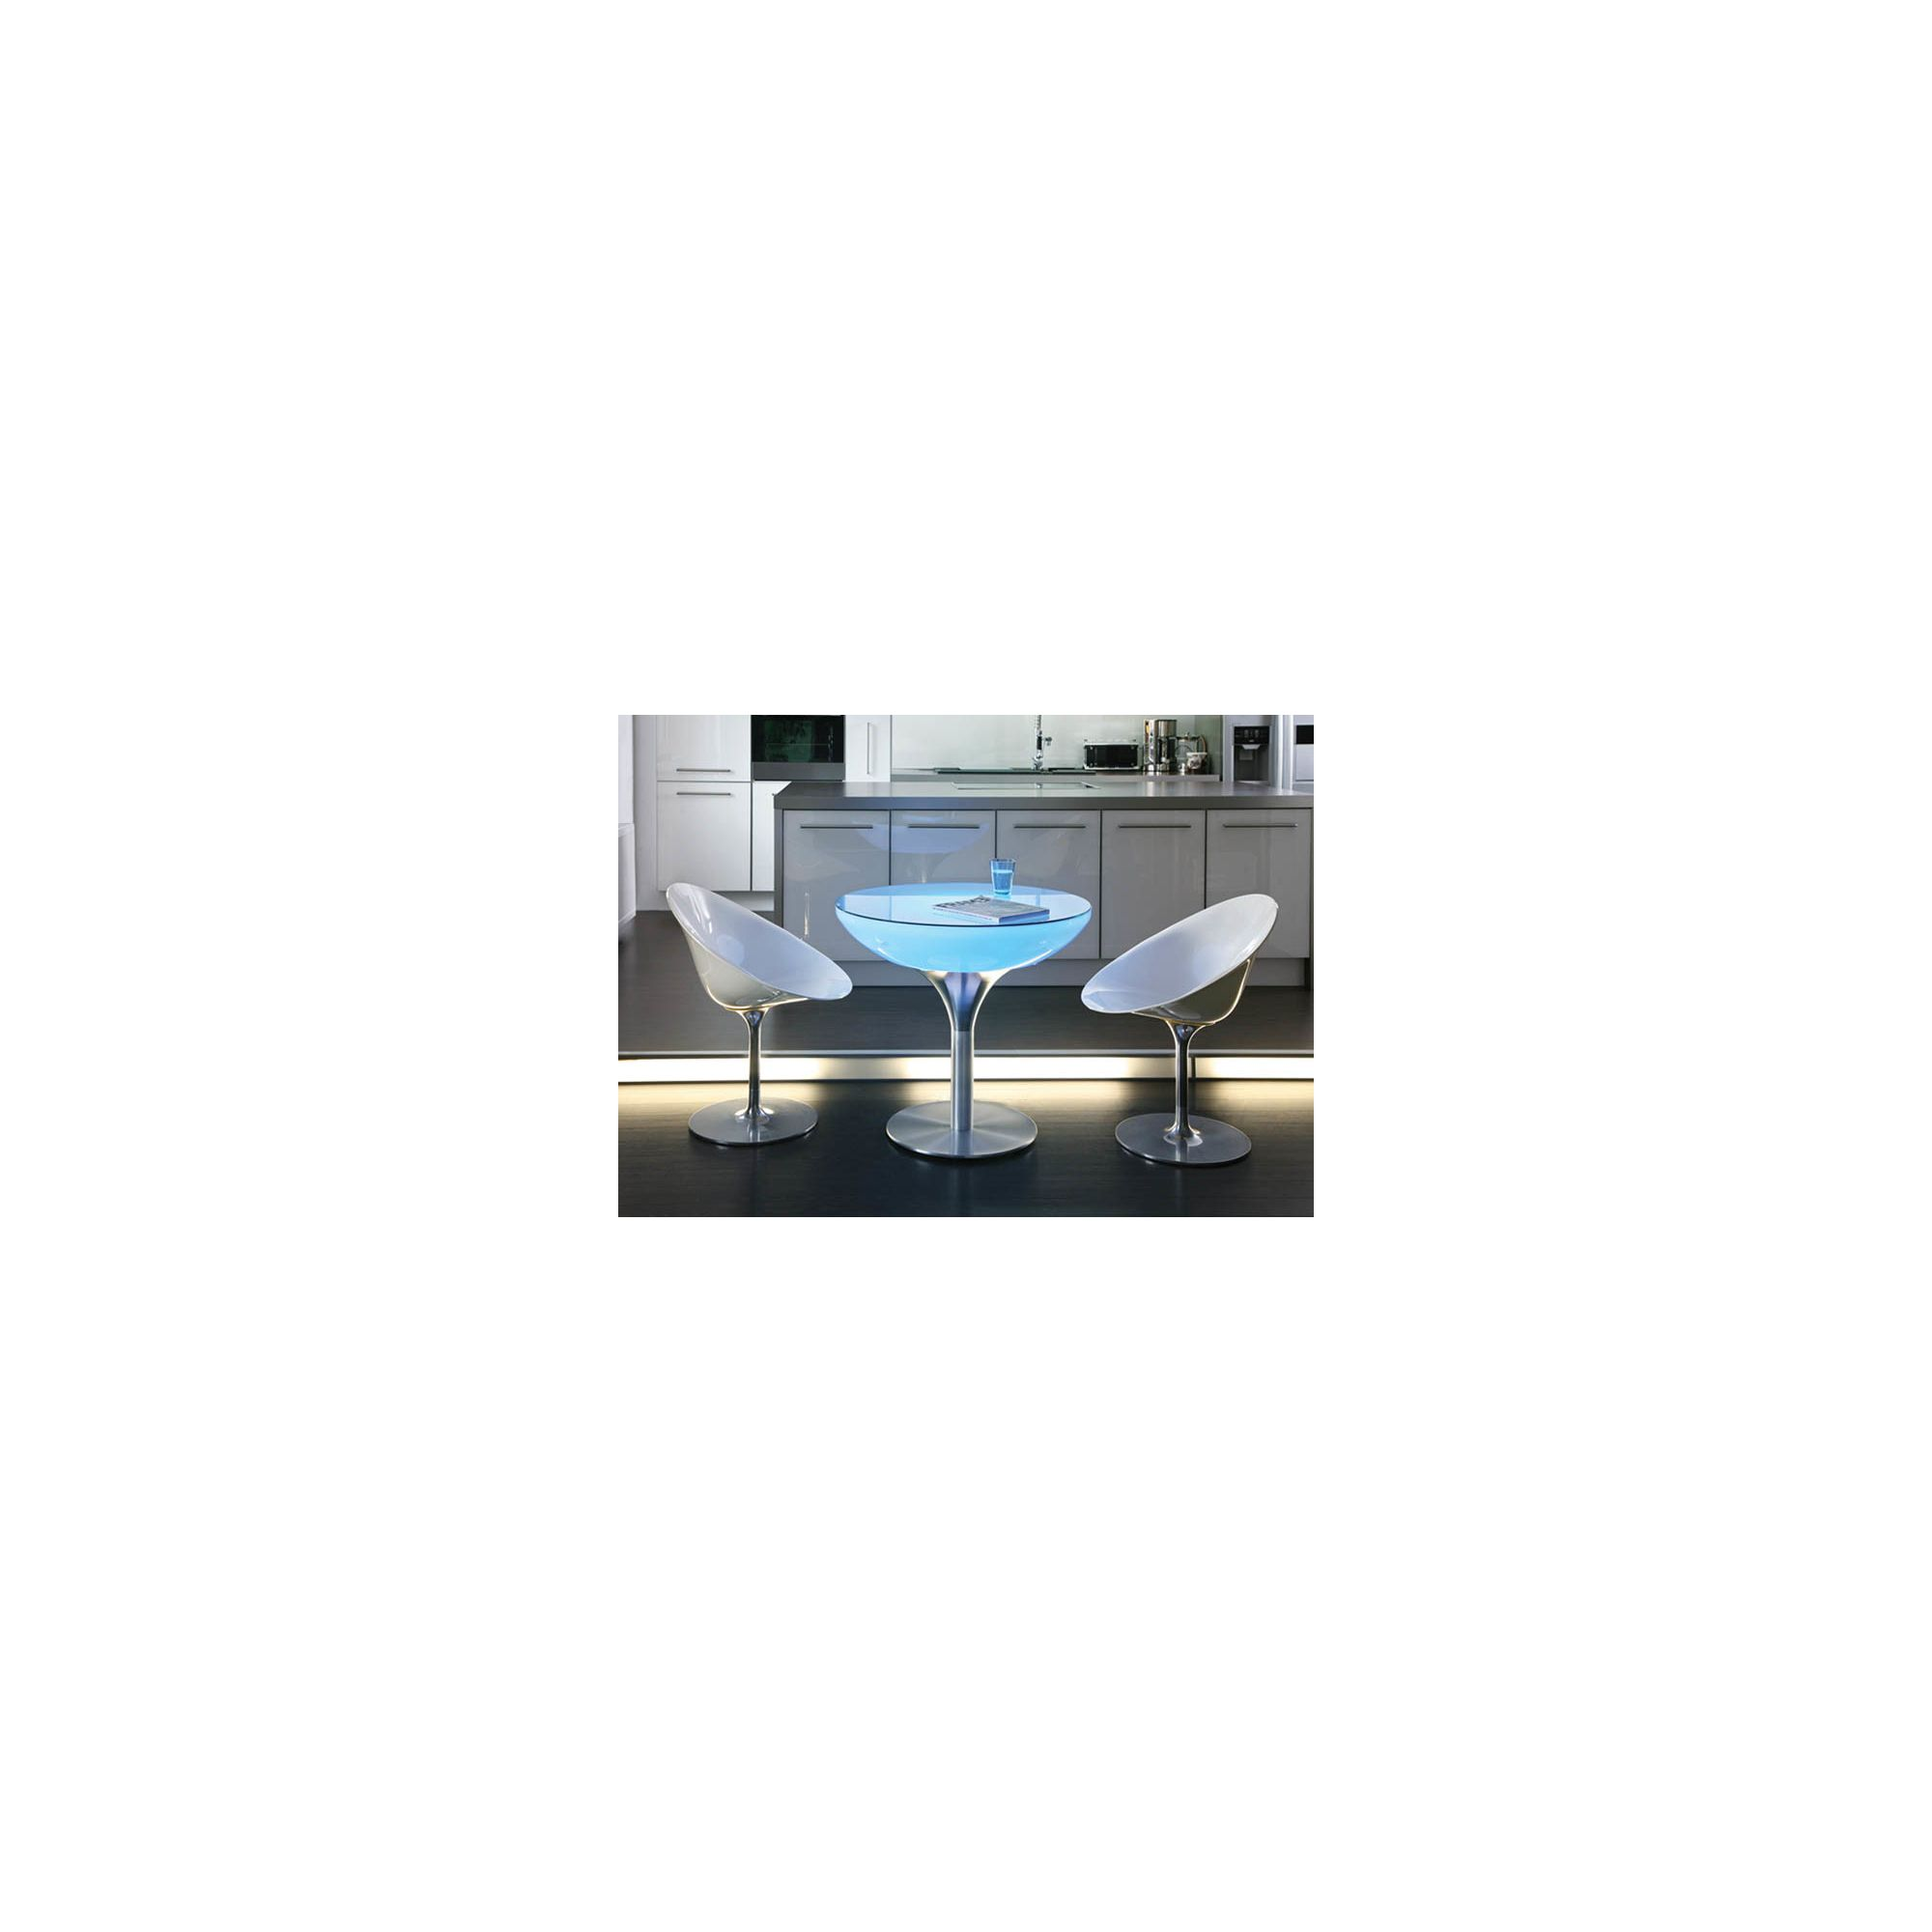 Moree Lounge Indoor Table with Glass Top - 55cm at Tesco Direct